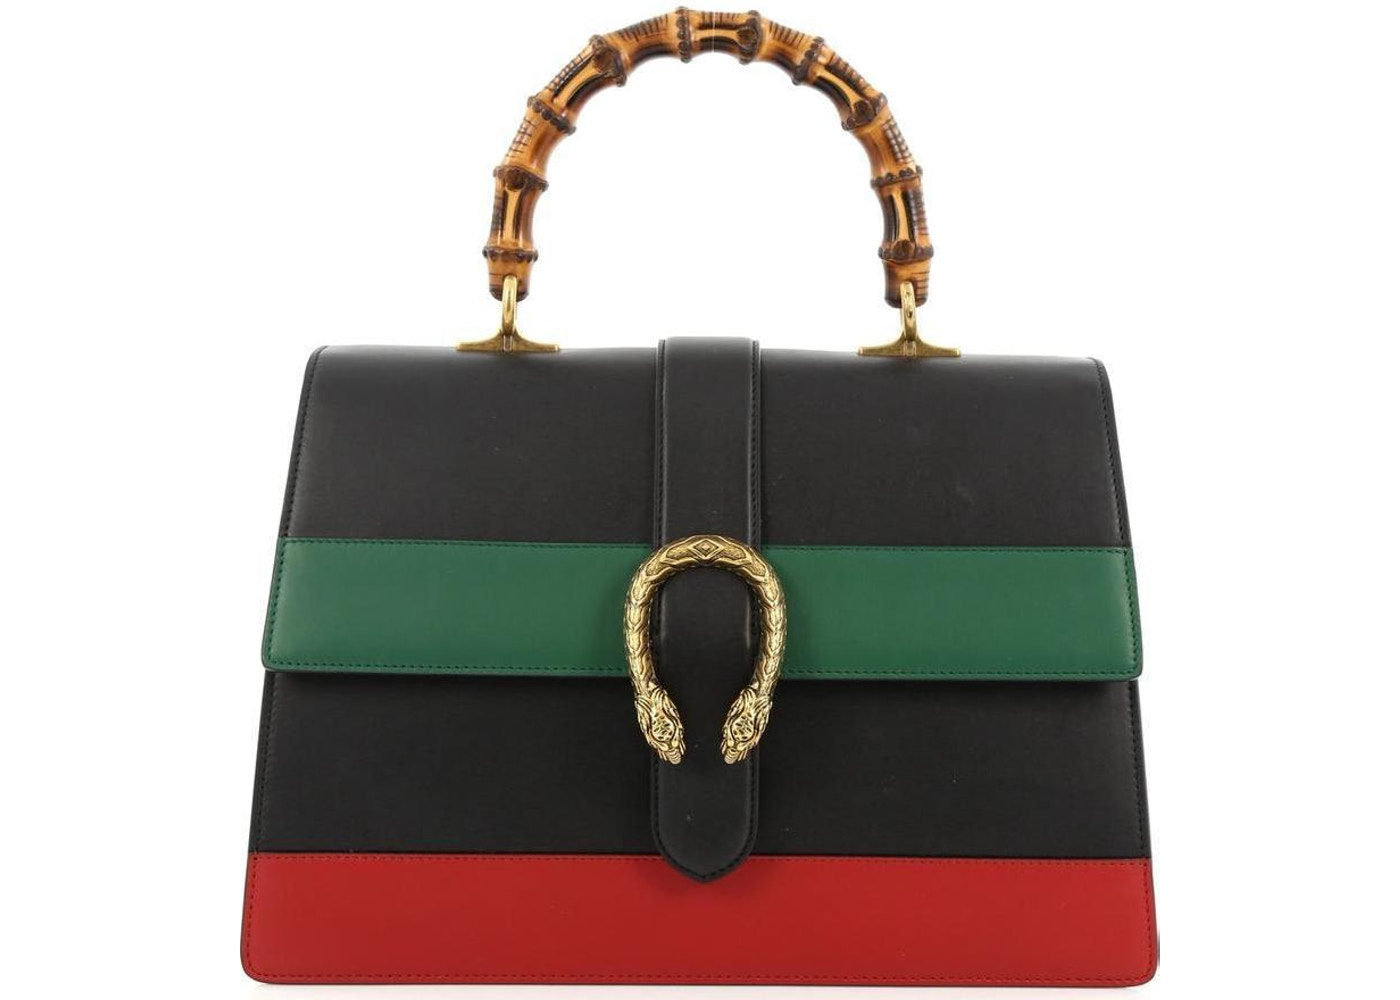 e3eda8b06fe6 Gucci Dionysus Bamboo Top Handle GG Large Black/Green/Red